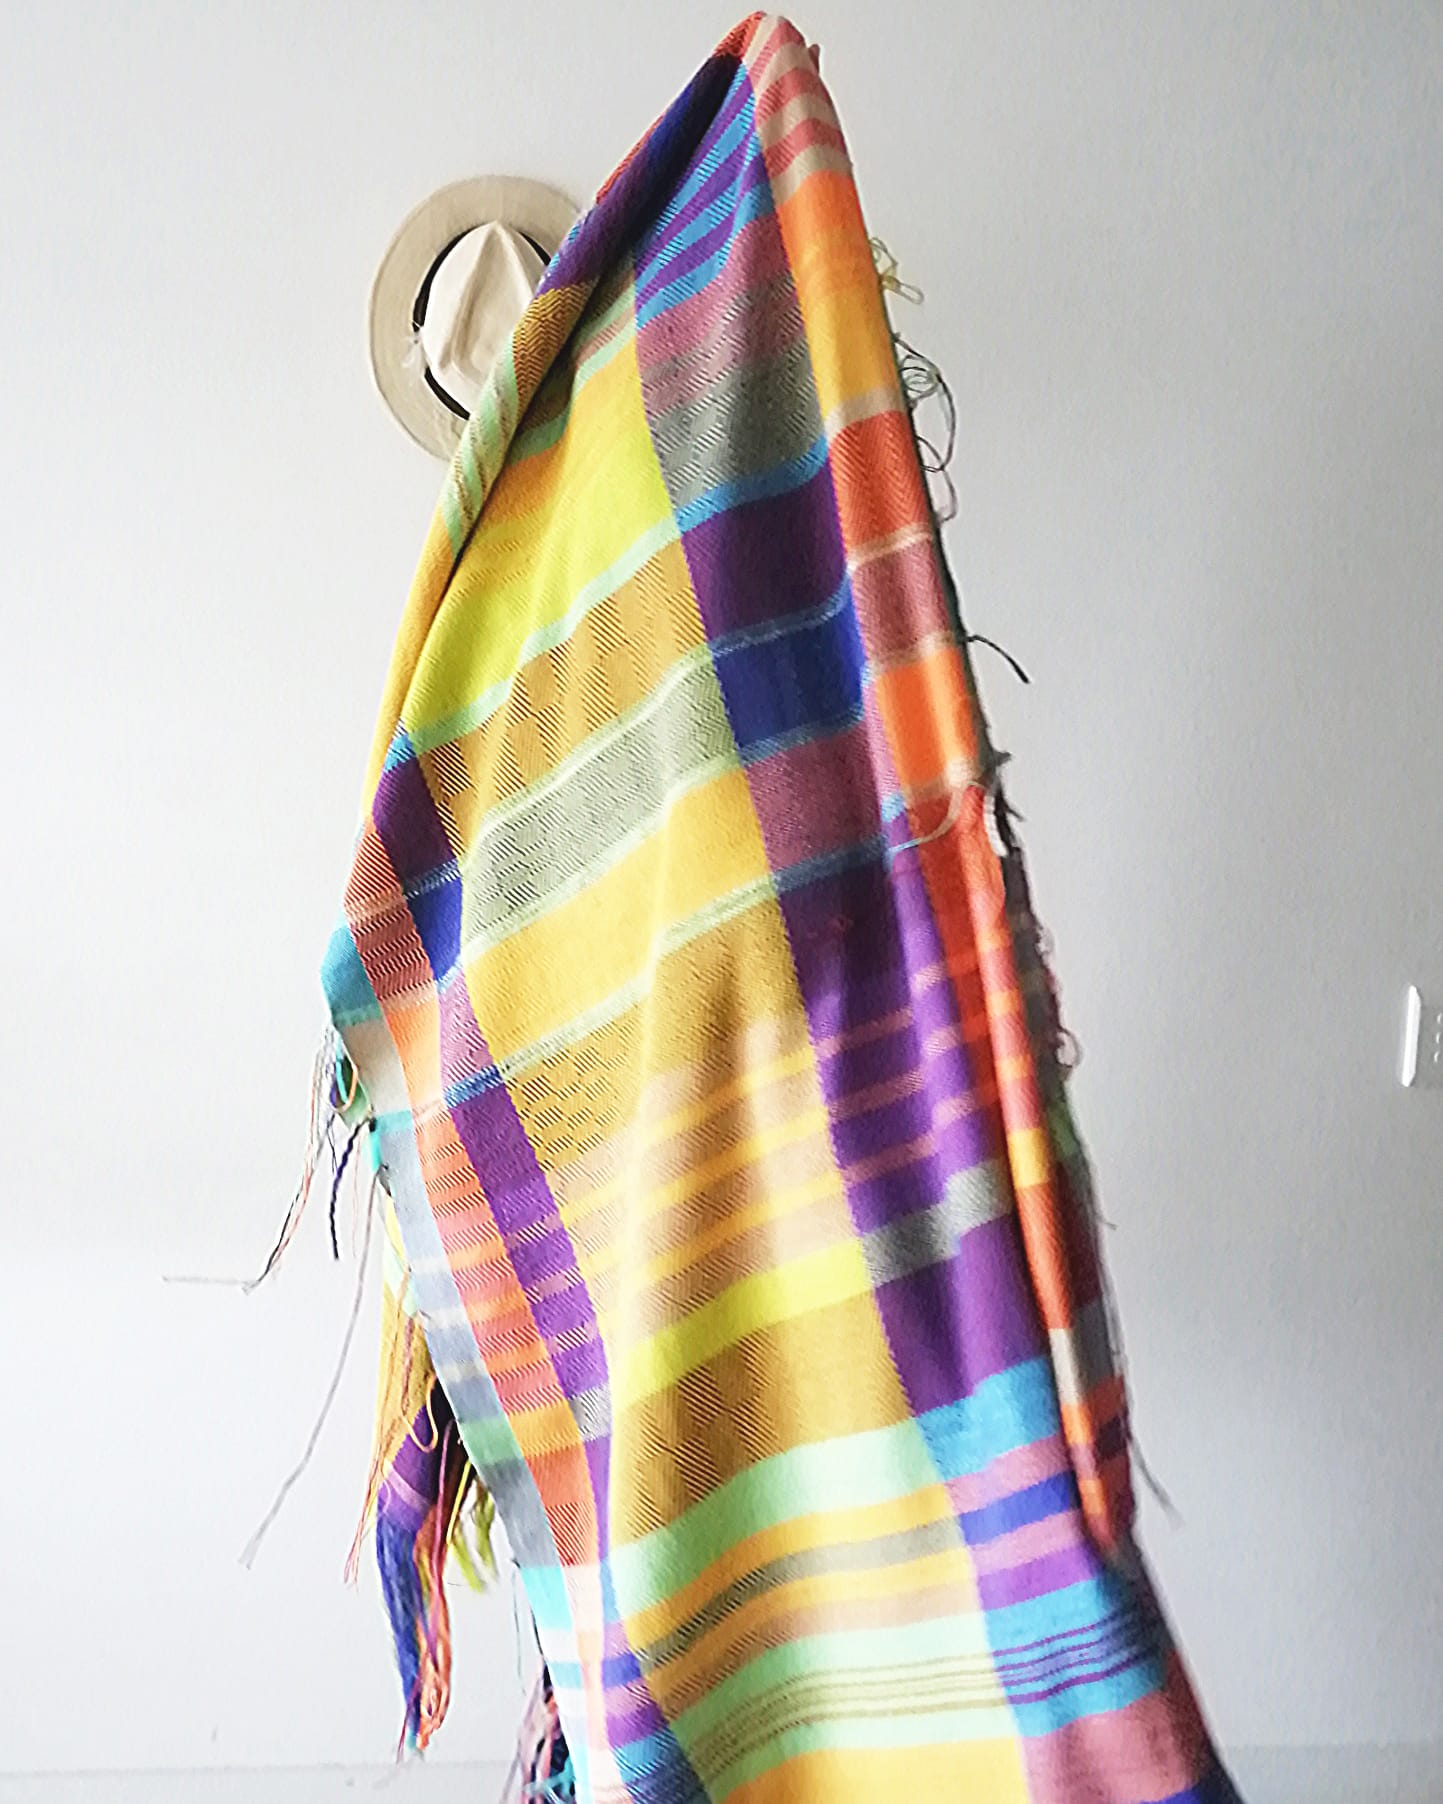 A brightly coloured checkered fabric woven by Mungo head designer, Lenore Schroeder on her handloom at home